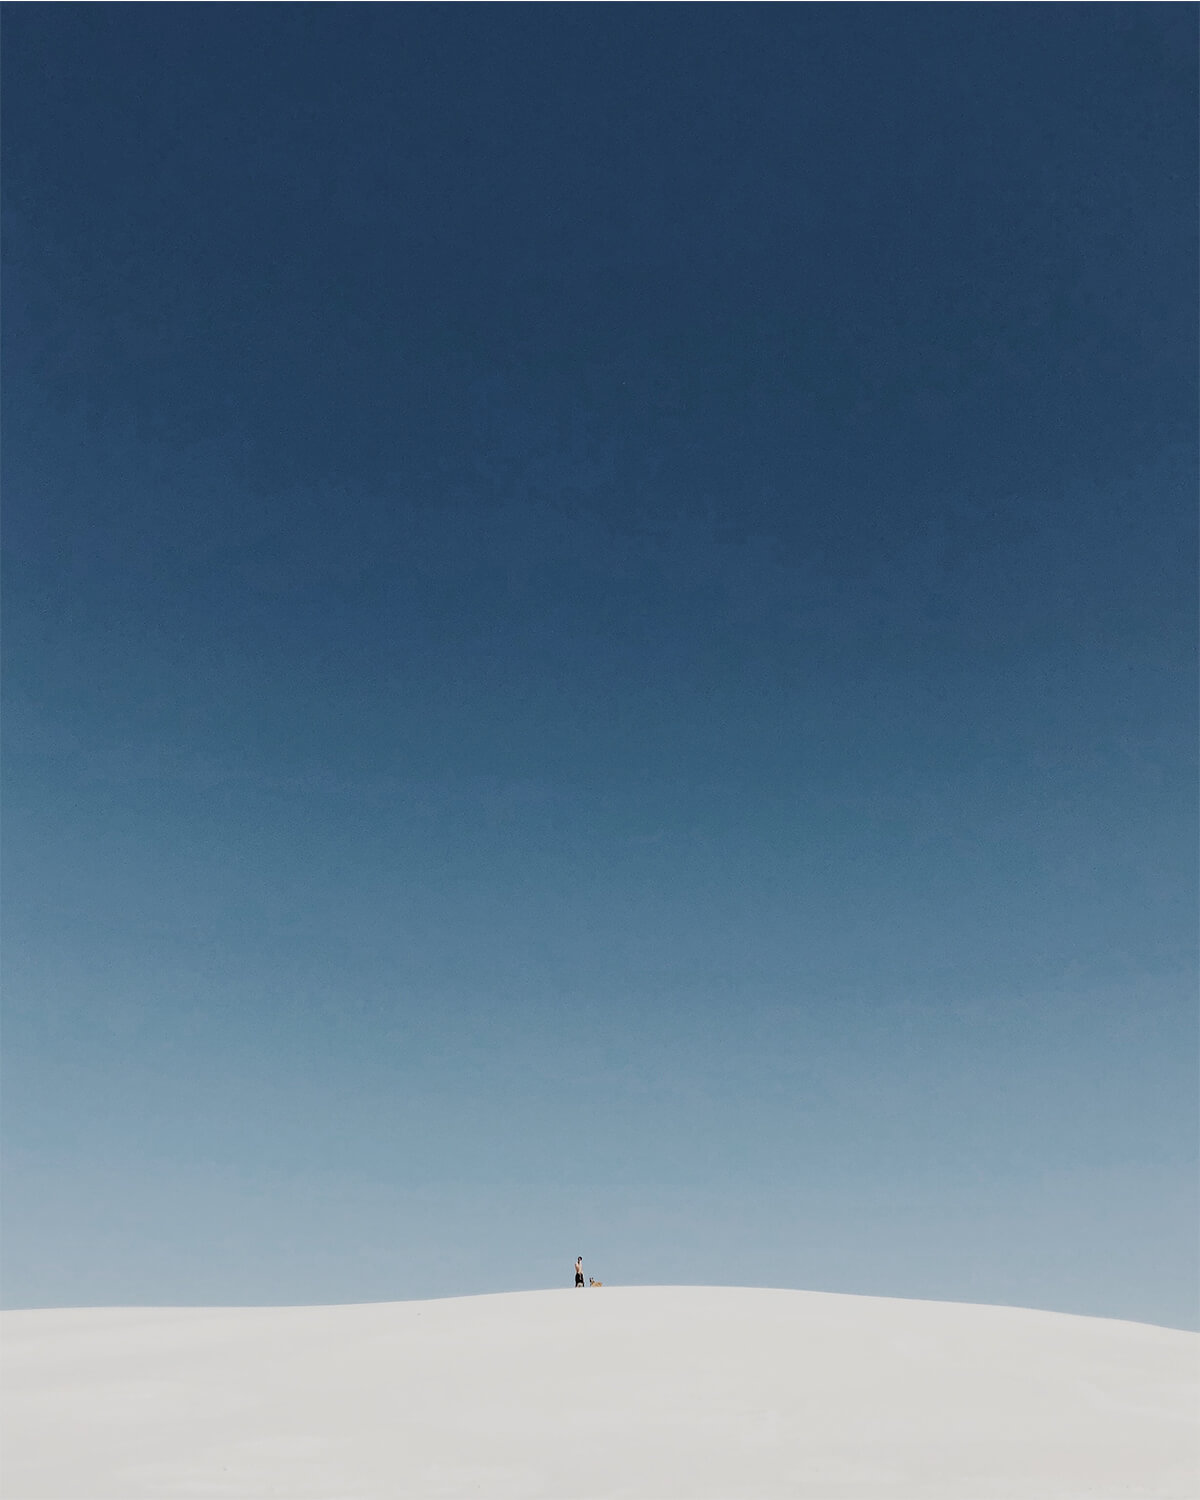 Man and dog standing on top of New Mexico sand dune